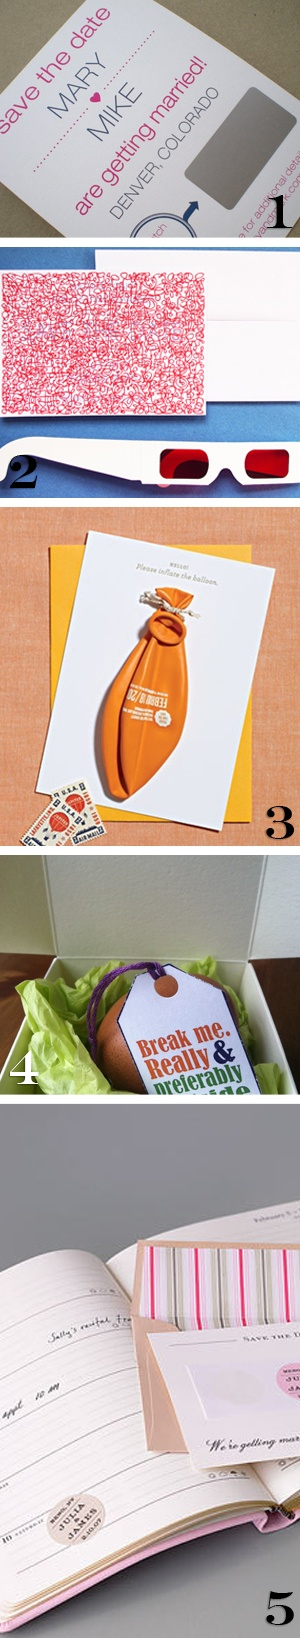 five unique save the date ideas how to diy wedding invitation stationery etc.